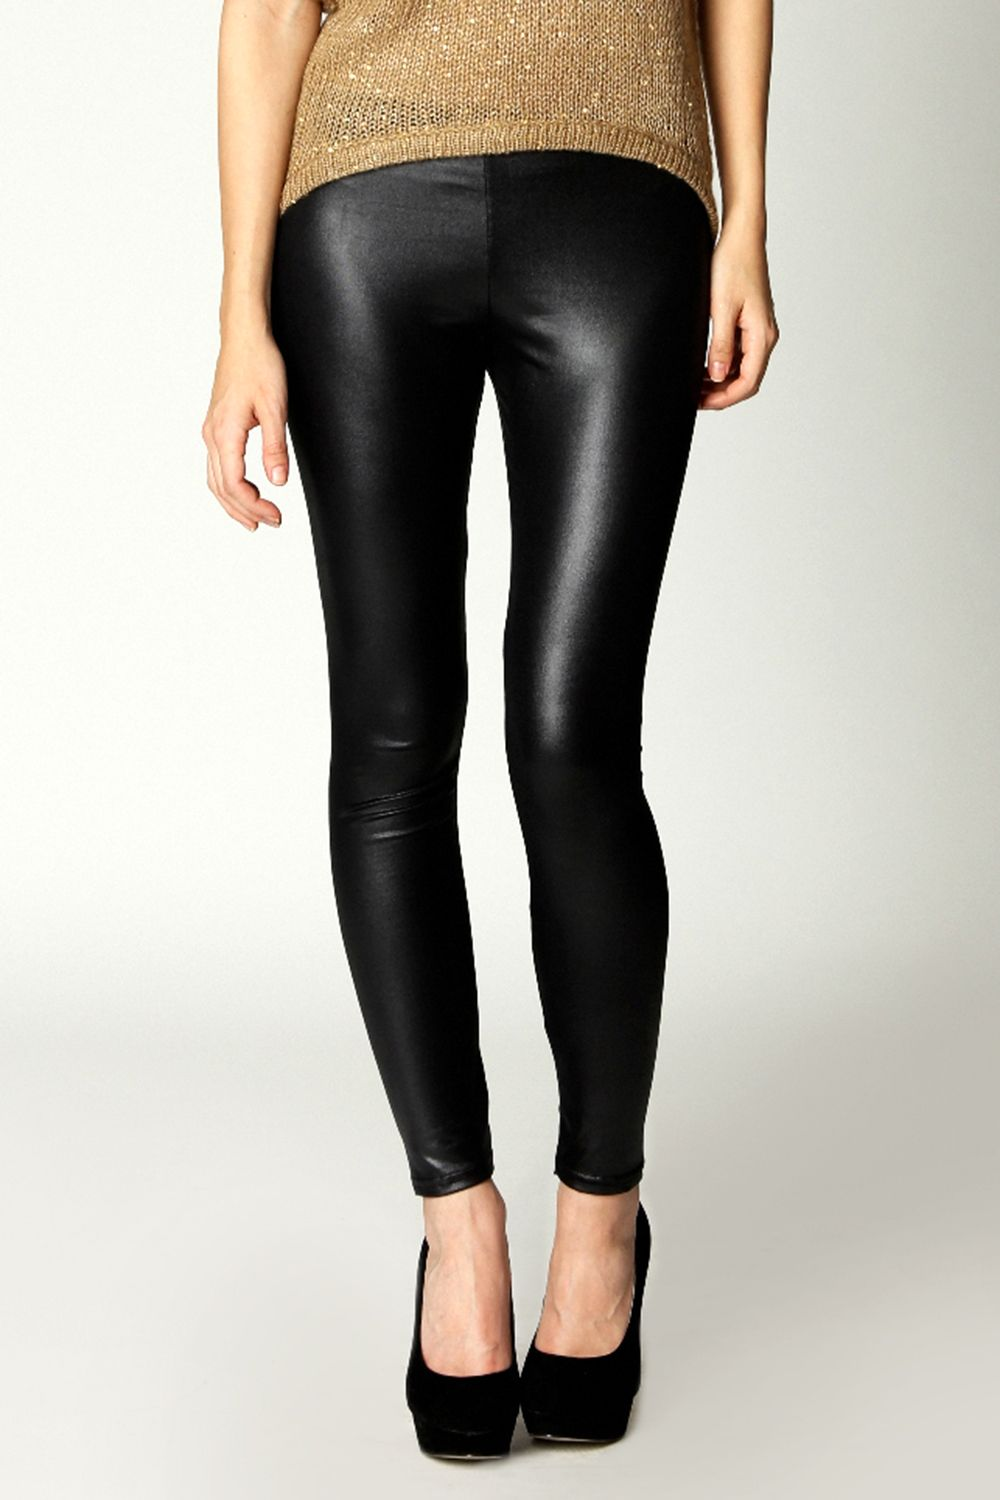 d2f45bf4784e Carla Wet Look Leggings £10 @ Boohoo | 6/9/12 Wish List Edited | Wet ...